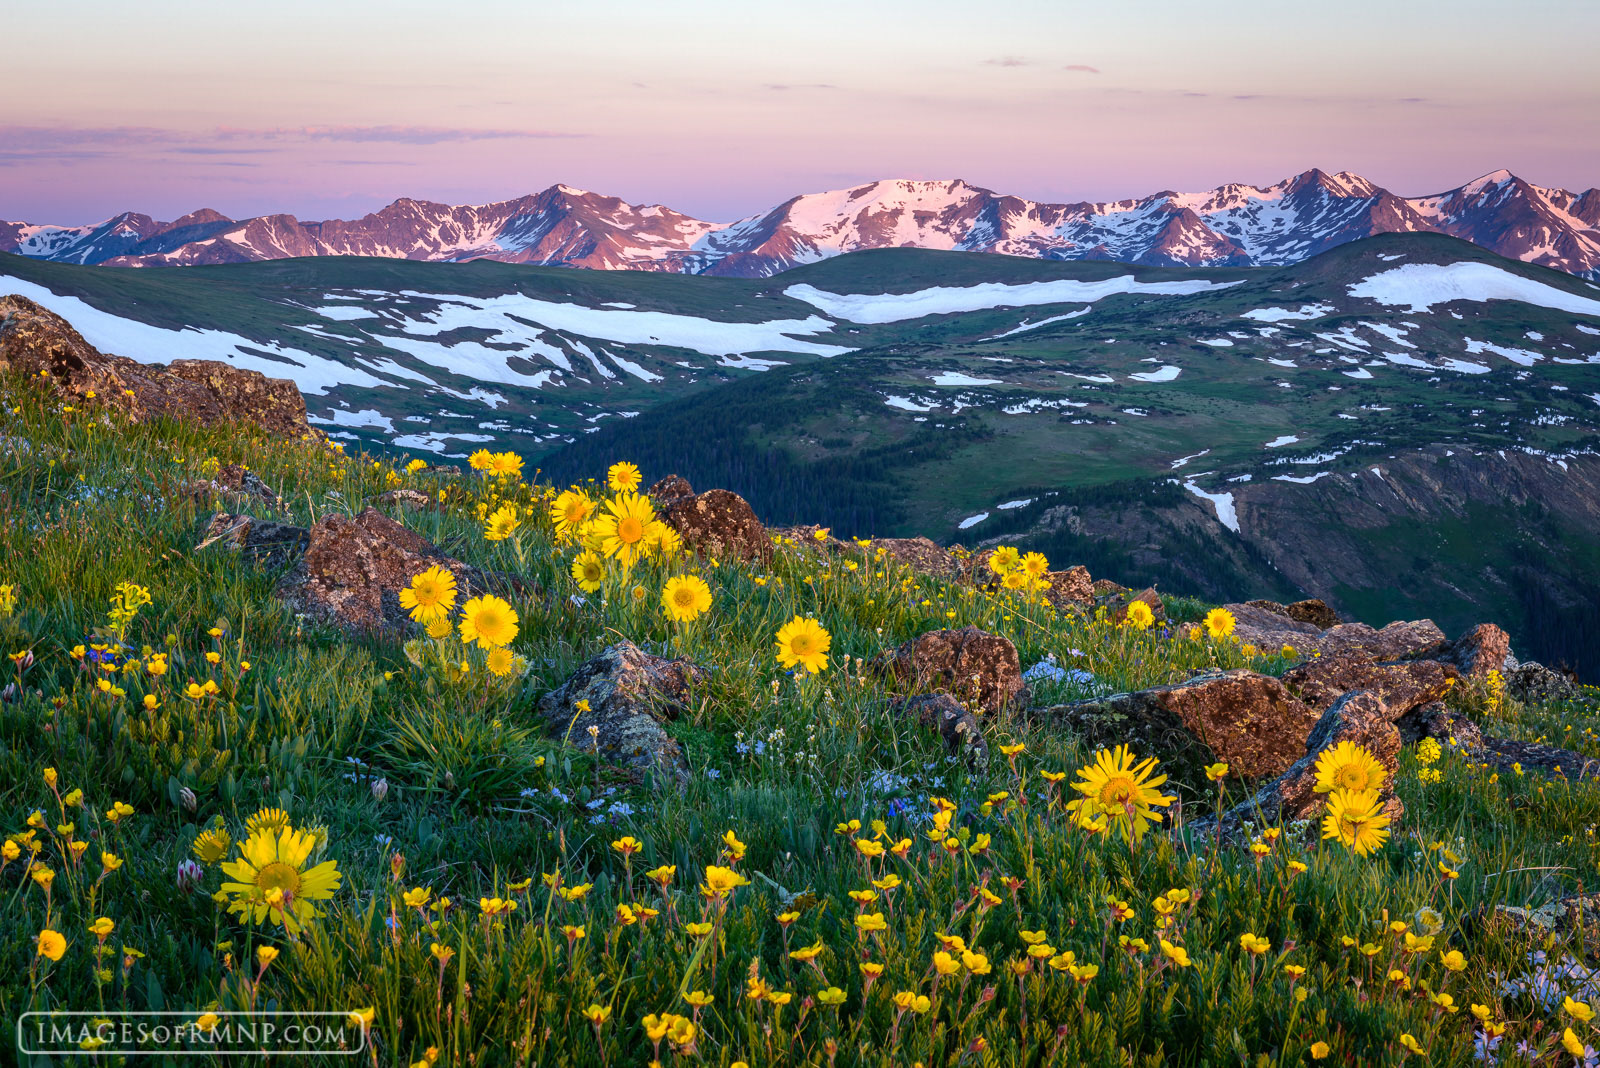 2015, Colorado, USA, alpine sunflower, america, flower, july, mountain, nature, never summer range, old man of the mountain, phlox, plant, rmnp, rocky, rocky mountain national park, rydbergia, summer,, photo